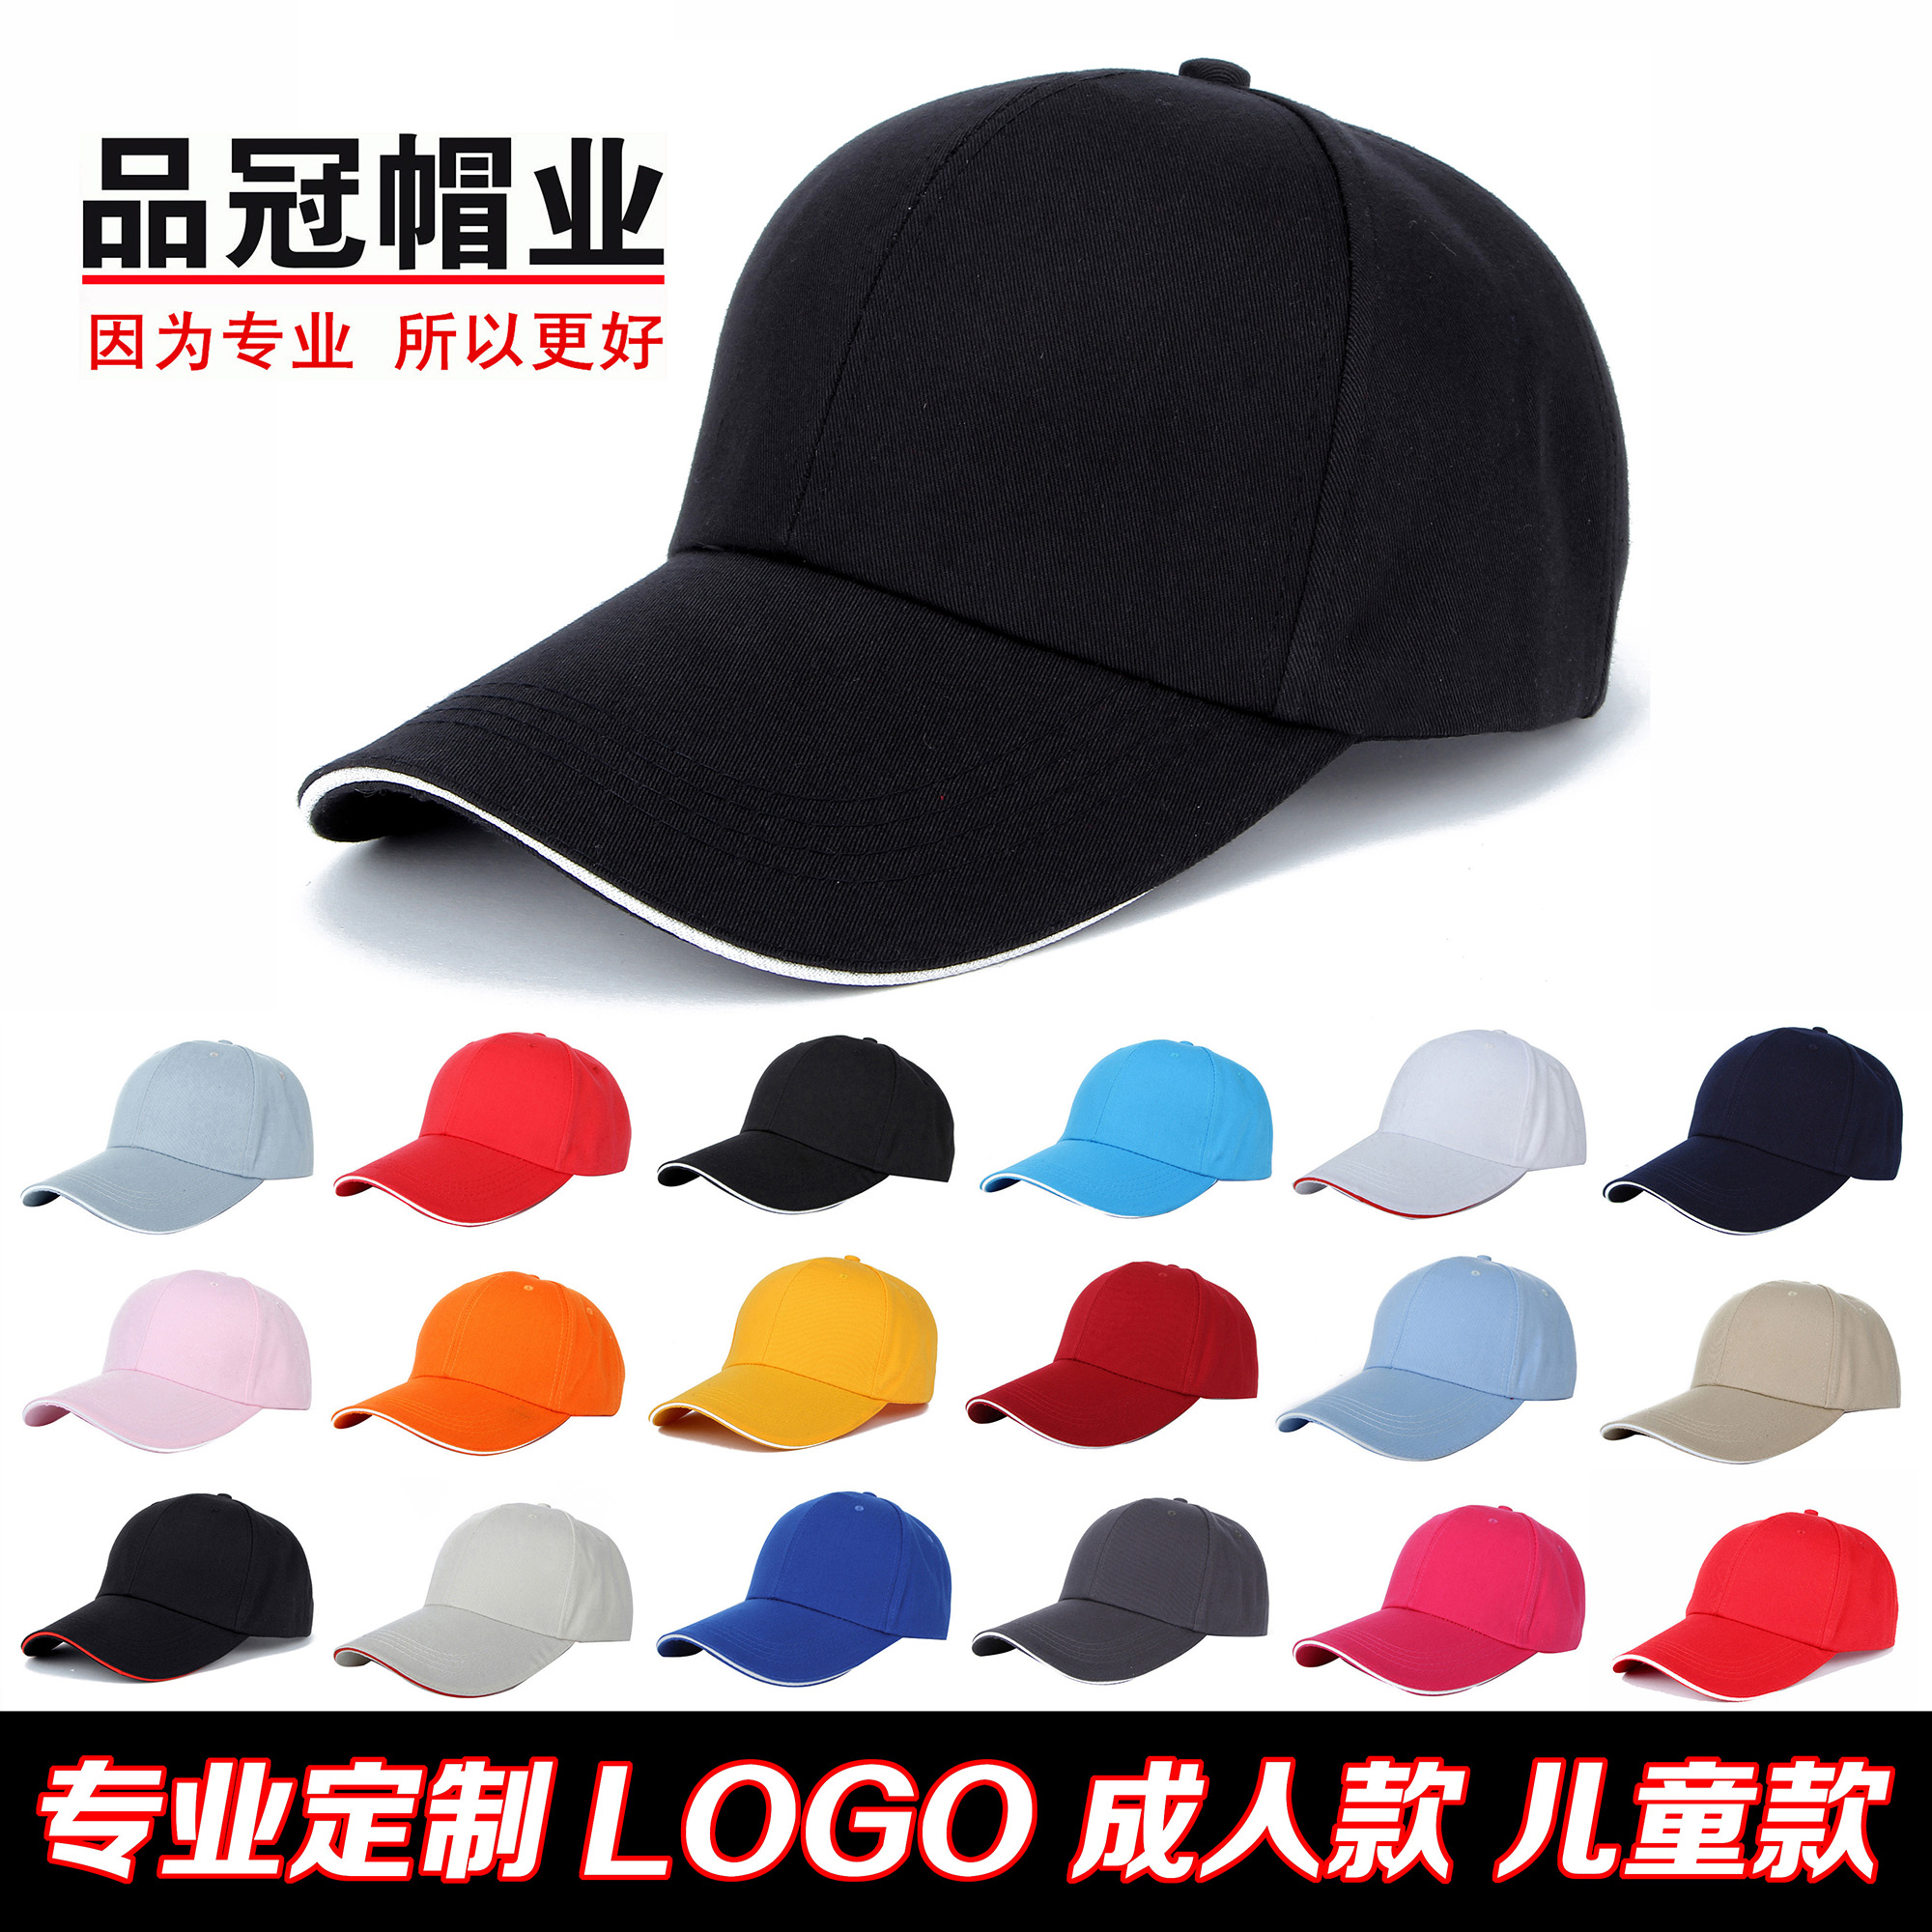 Baseball cap advertising cap custom logo printing embroidery team custom  children s sun cap men s and women s hats 81322e50f